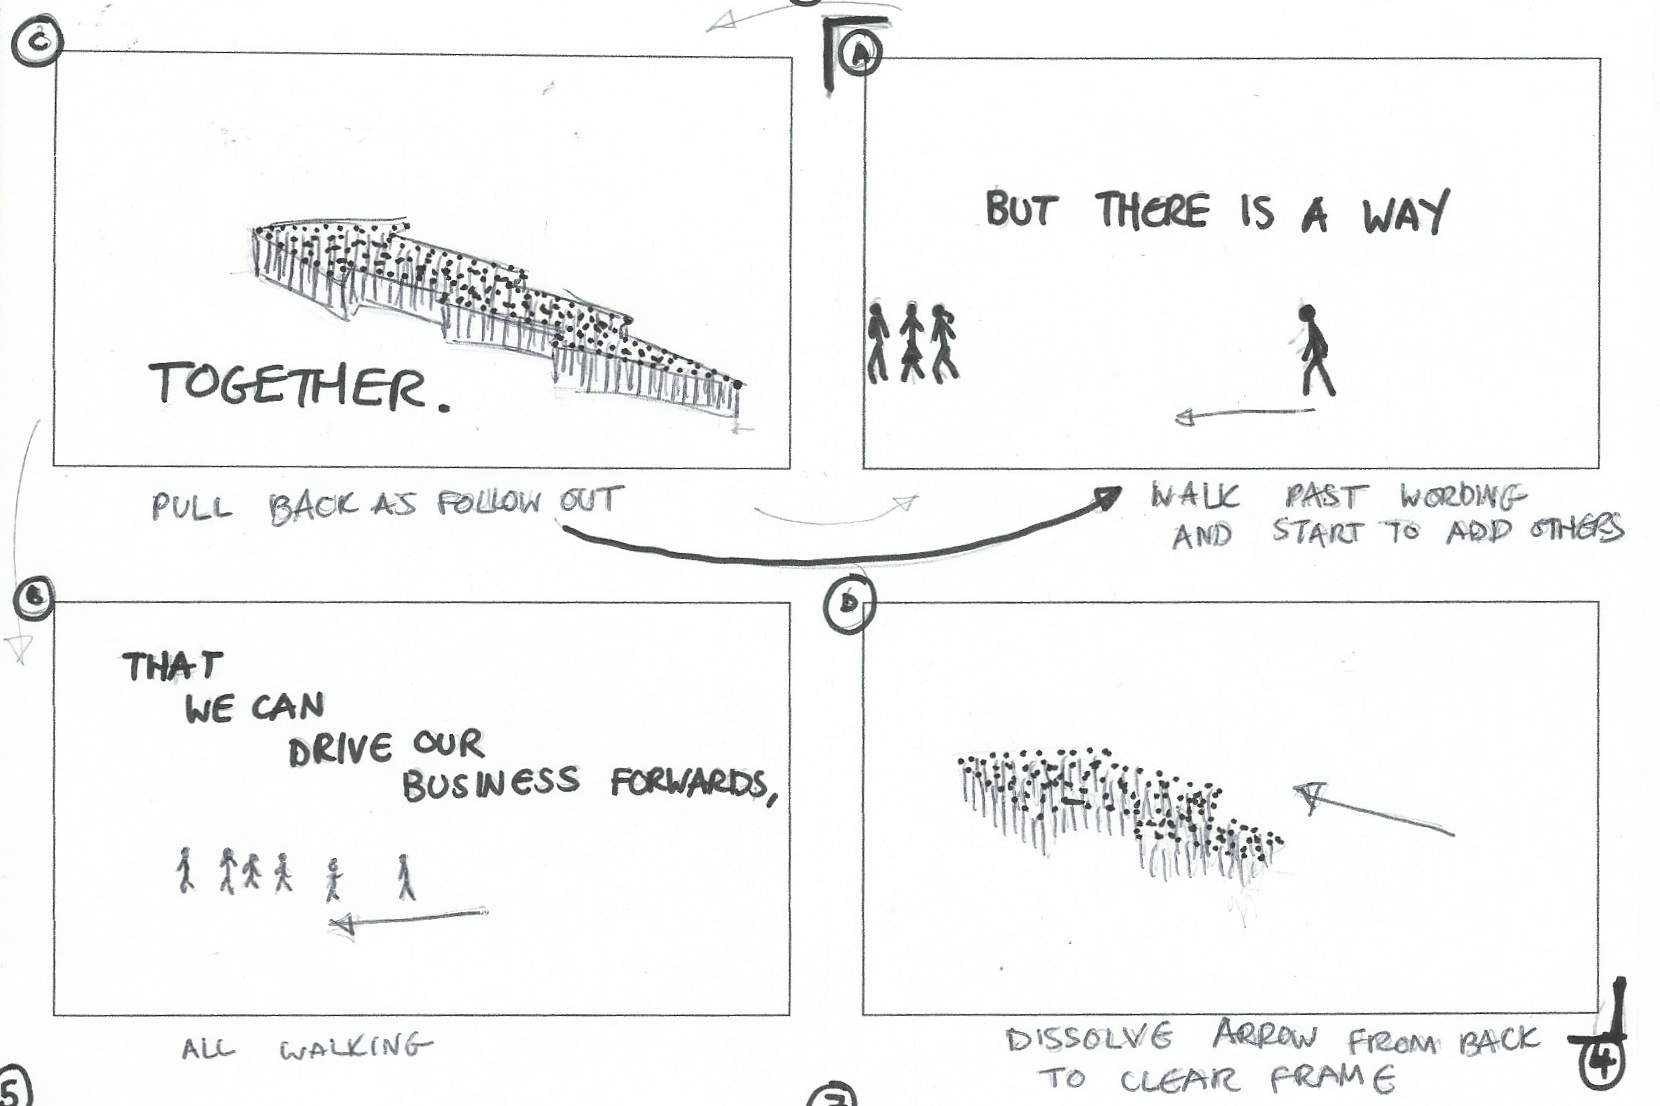 Excerpt from a storyboard we produced